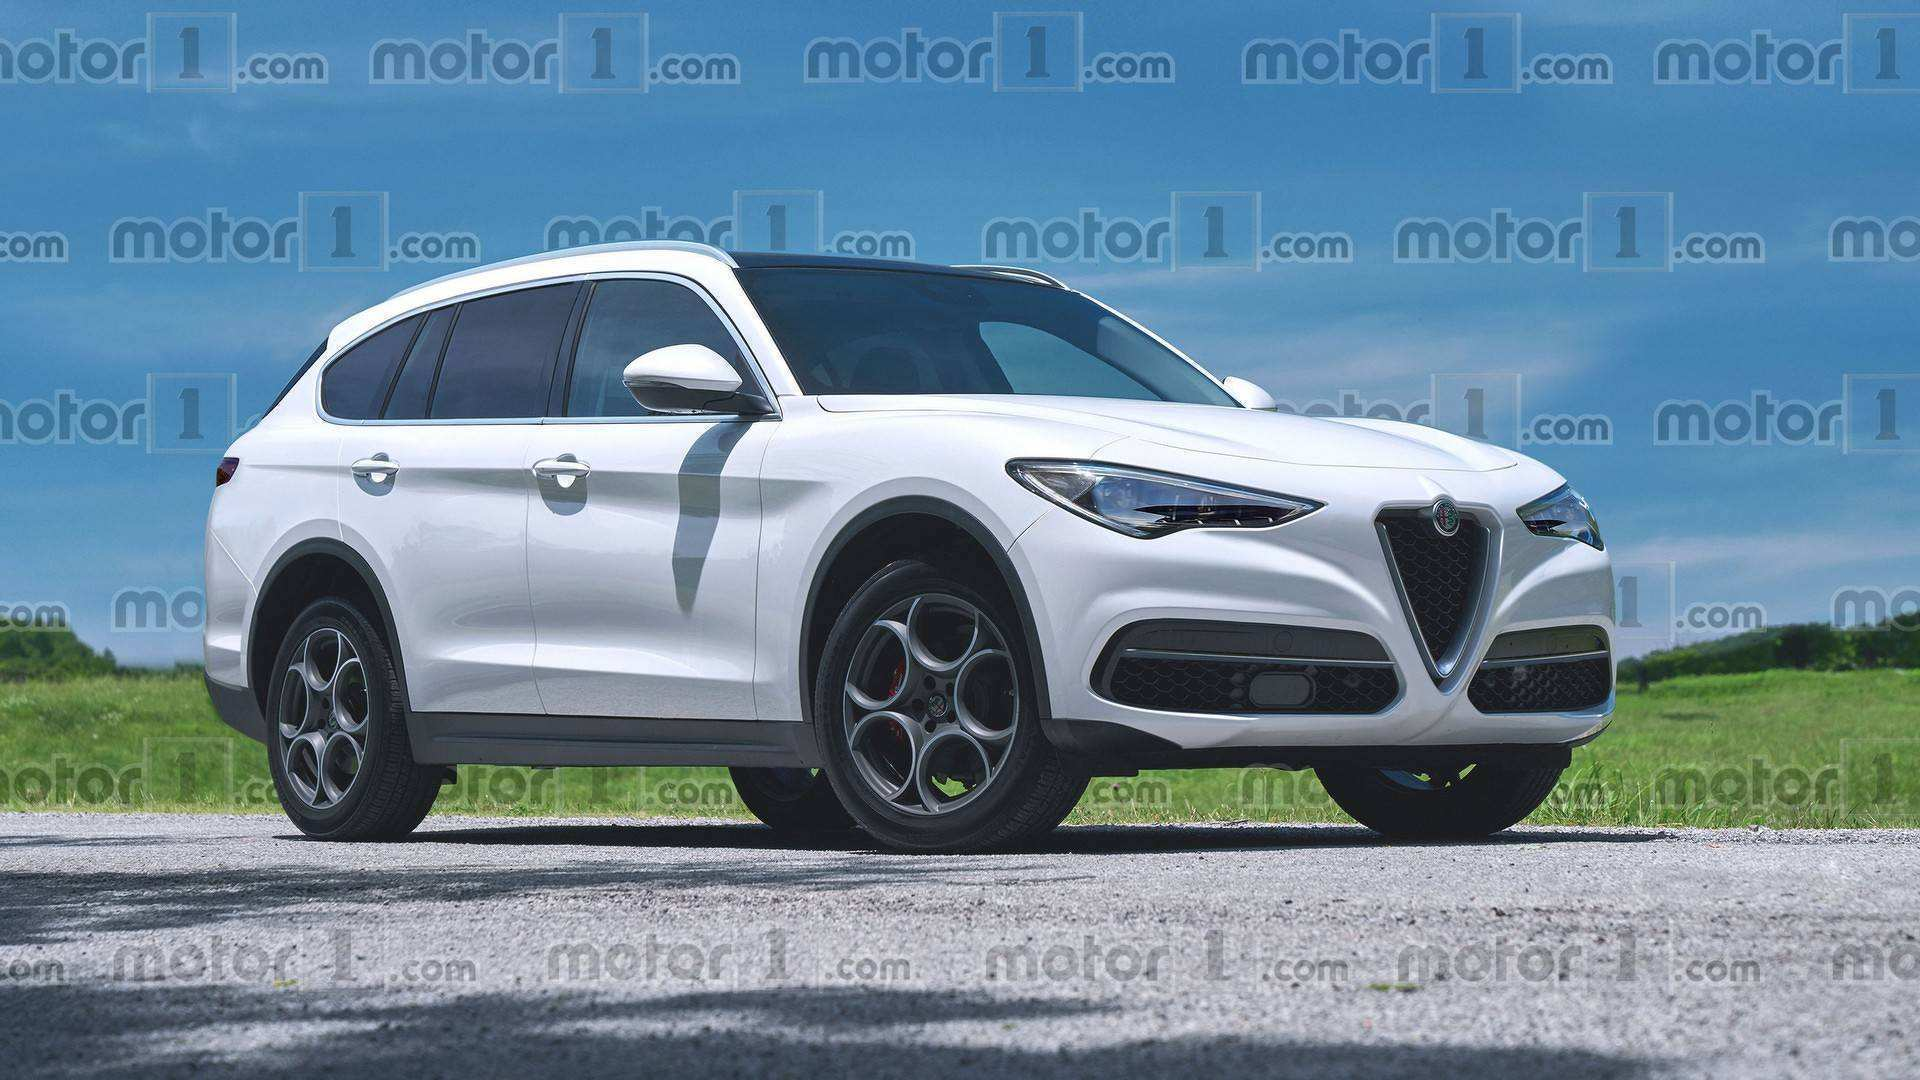 59 Best Review 2020 Alfa Romeo Stelvio Prices by 2020 Alfa Romeo Stelvio